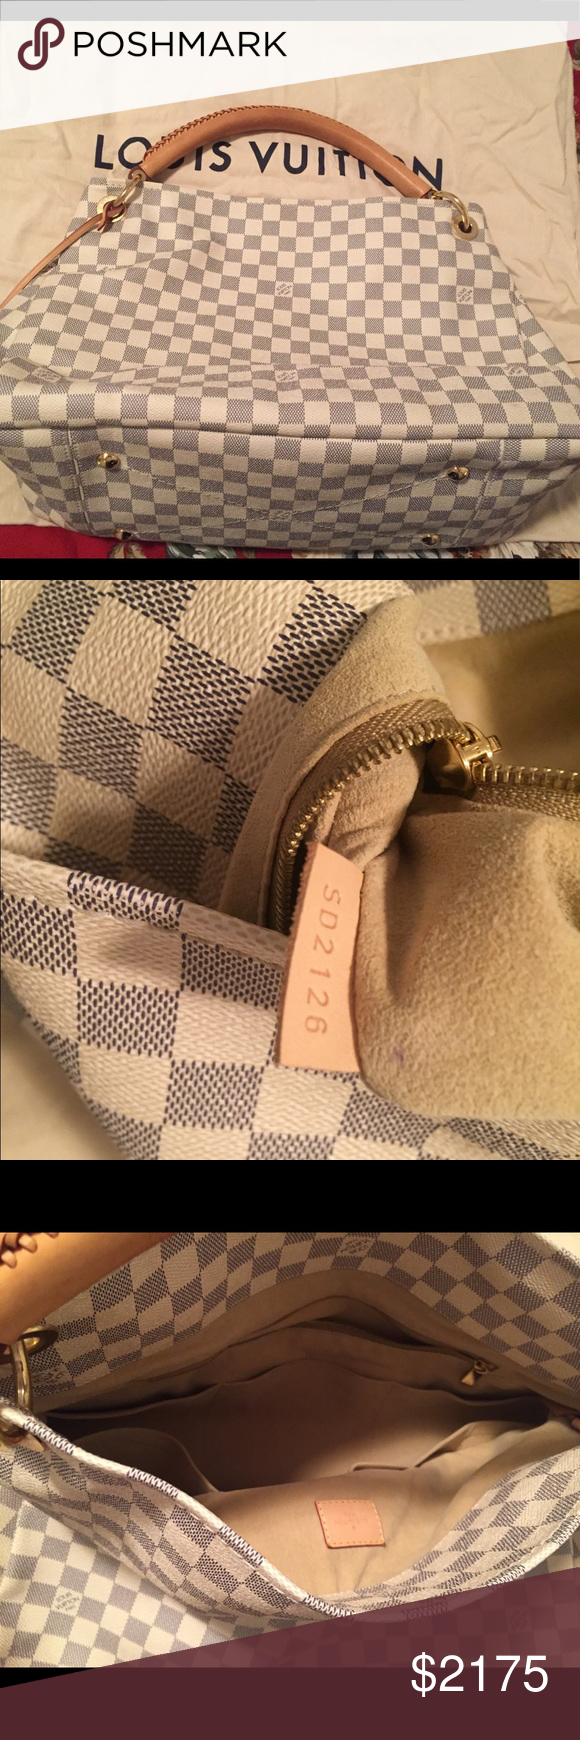 a557bbb7590 Spotted while shopping on Poshmark  Authentic Louis Vuitton Demier Azure ARTSY  MM bag!